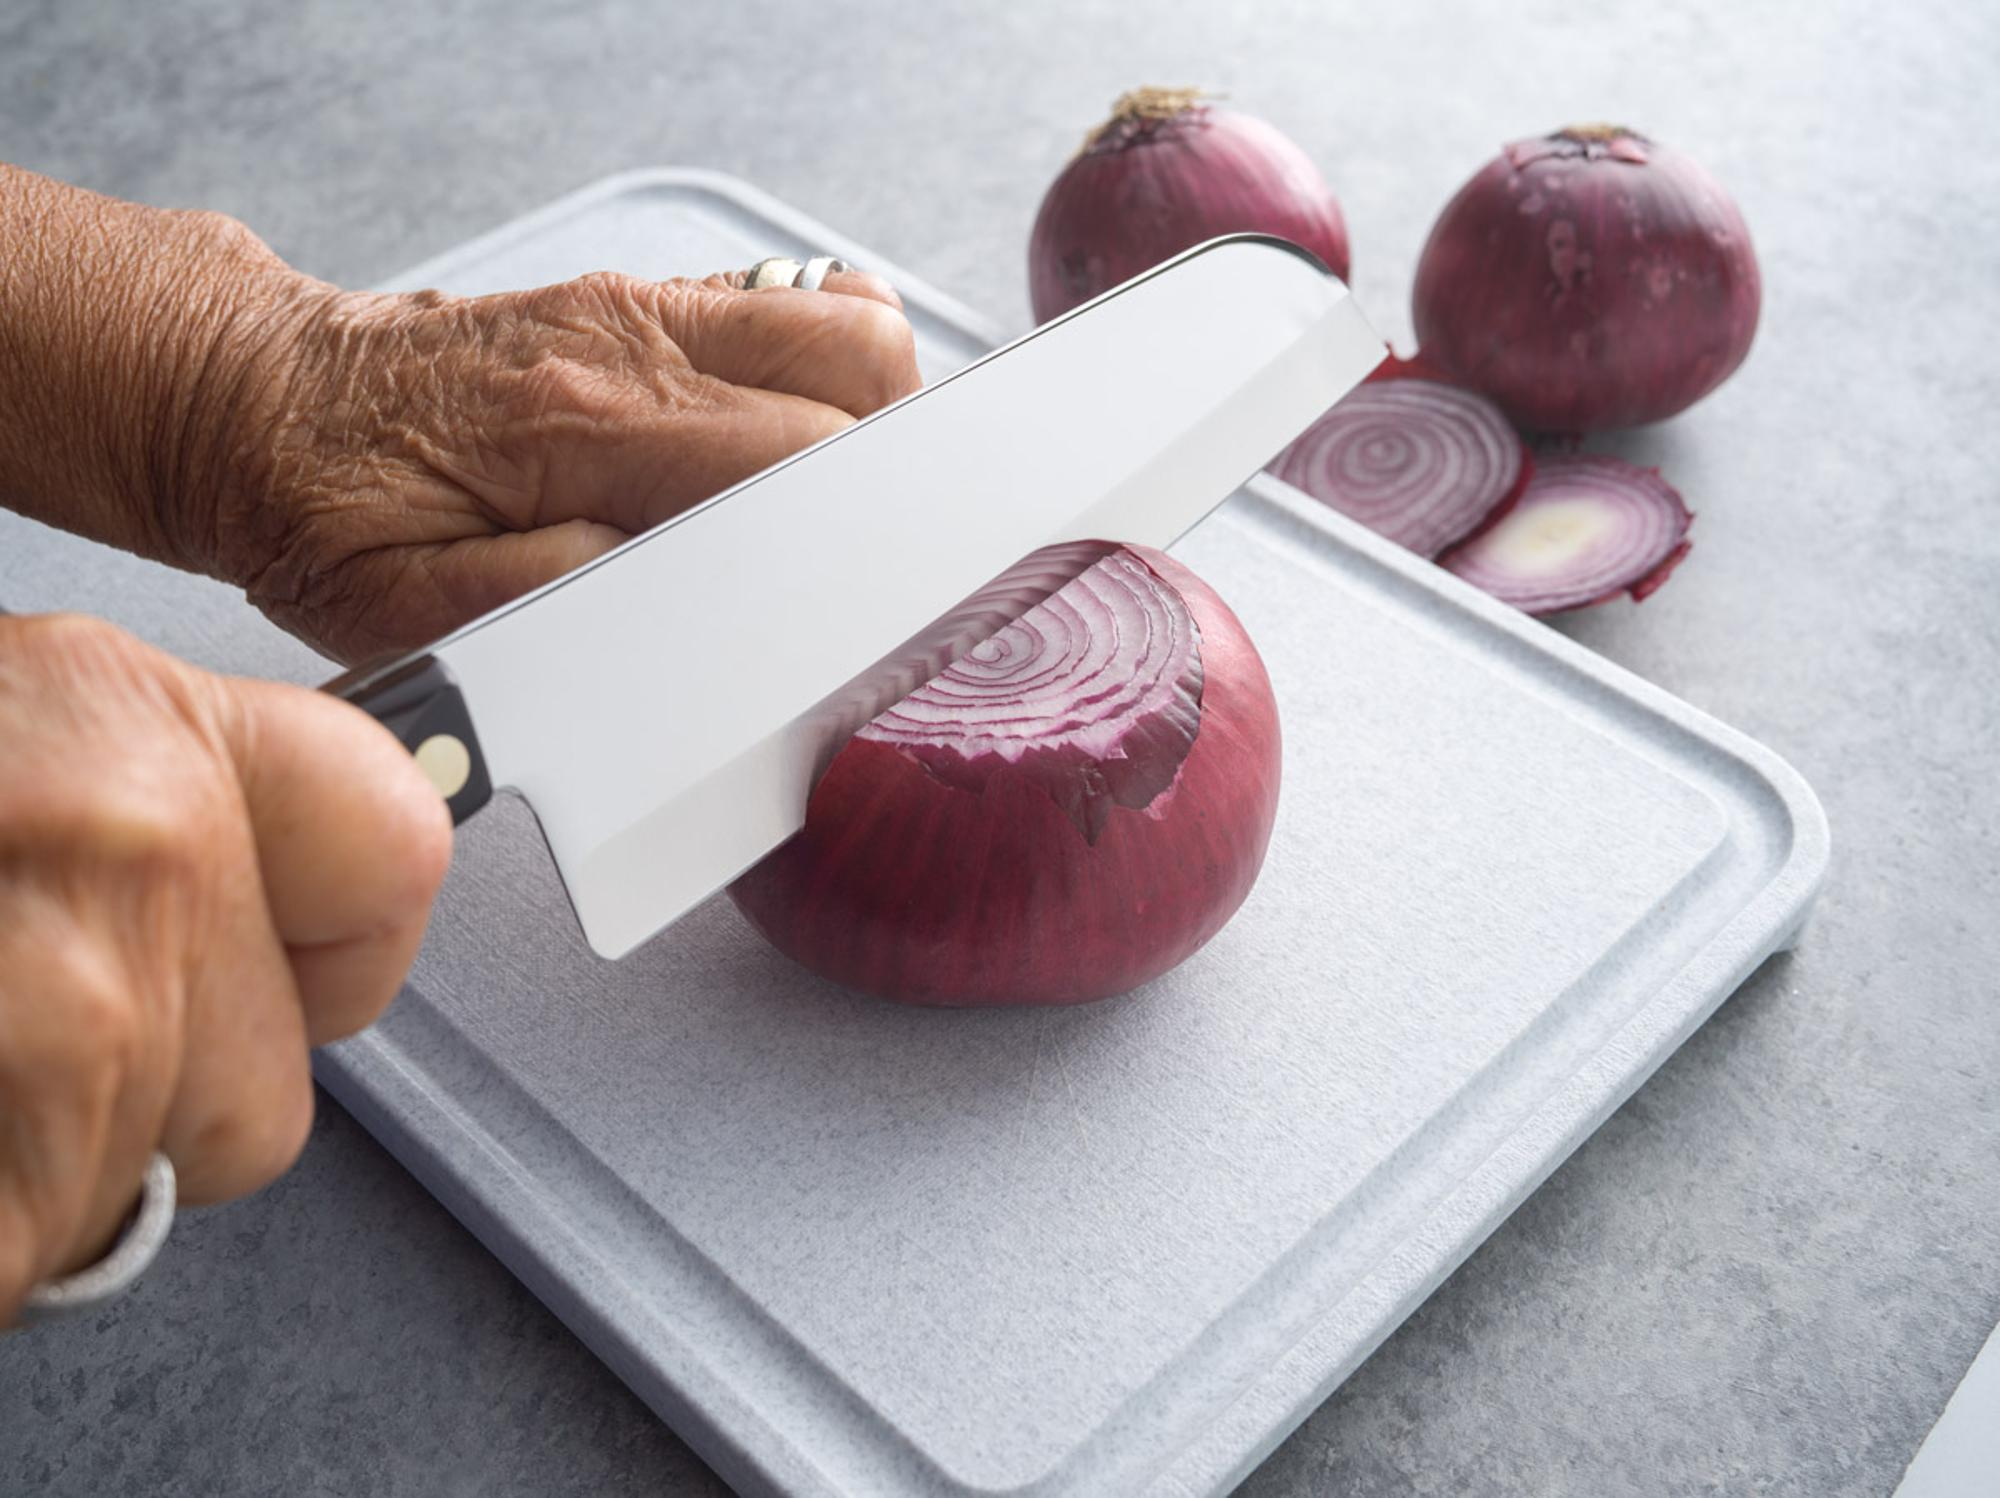 Cutting red onion with a Santoku.